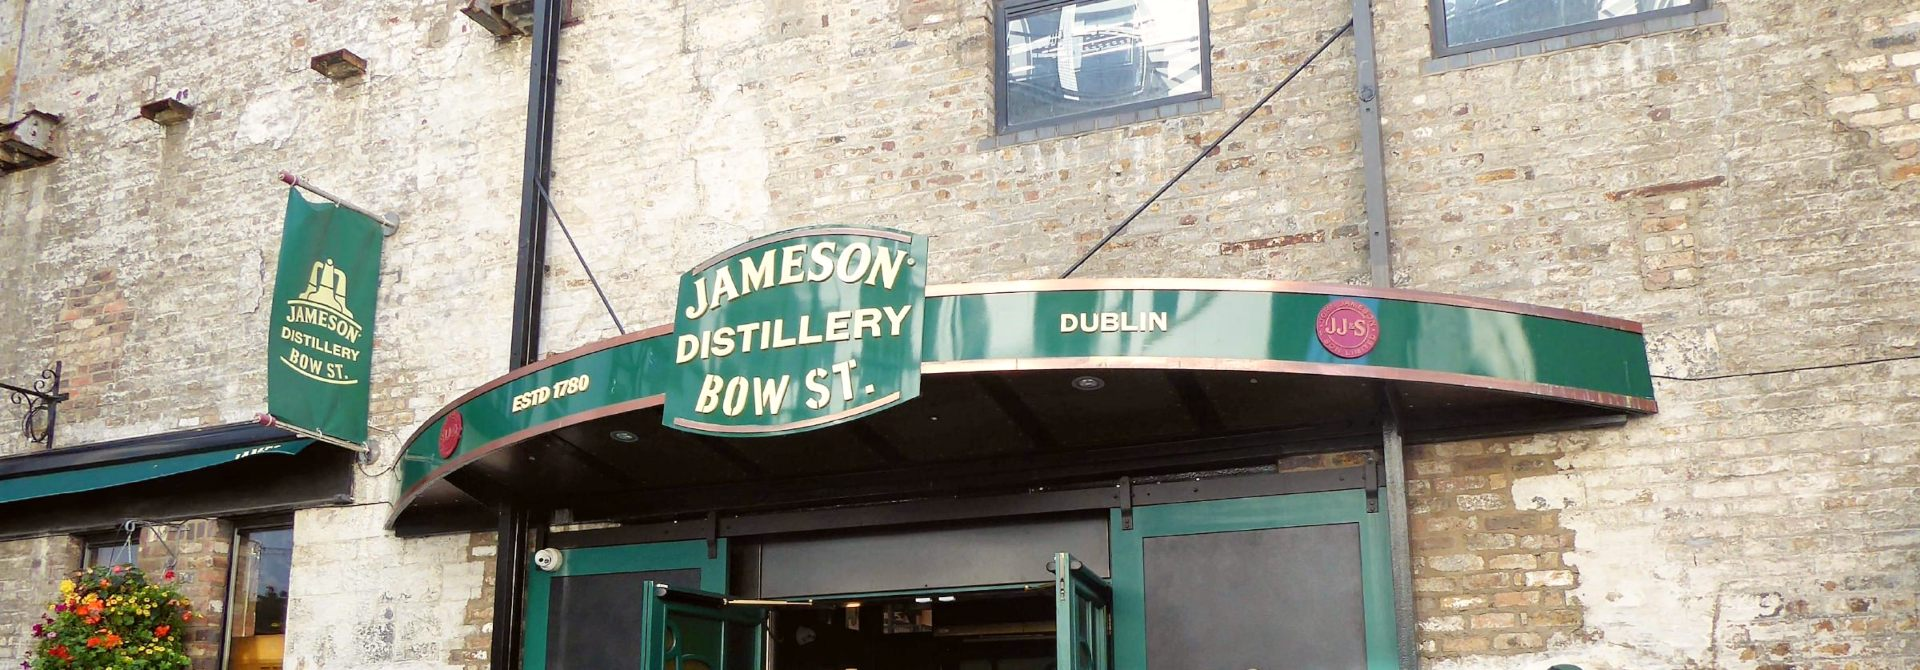 Jameson Distillery Header